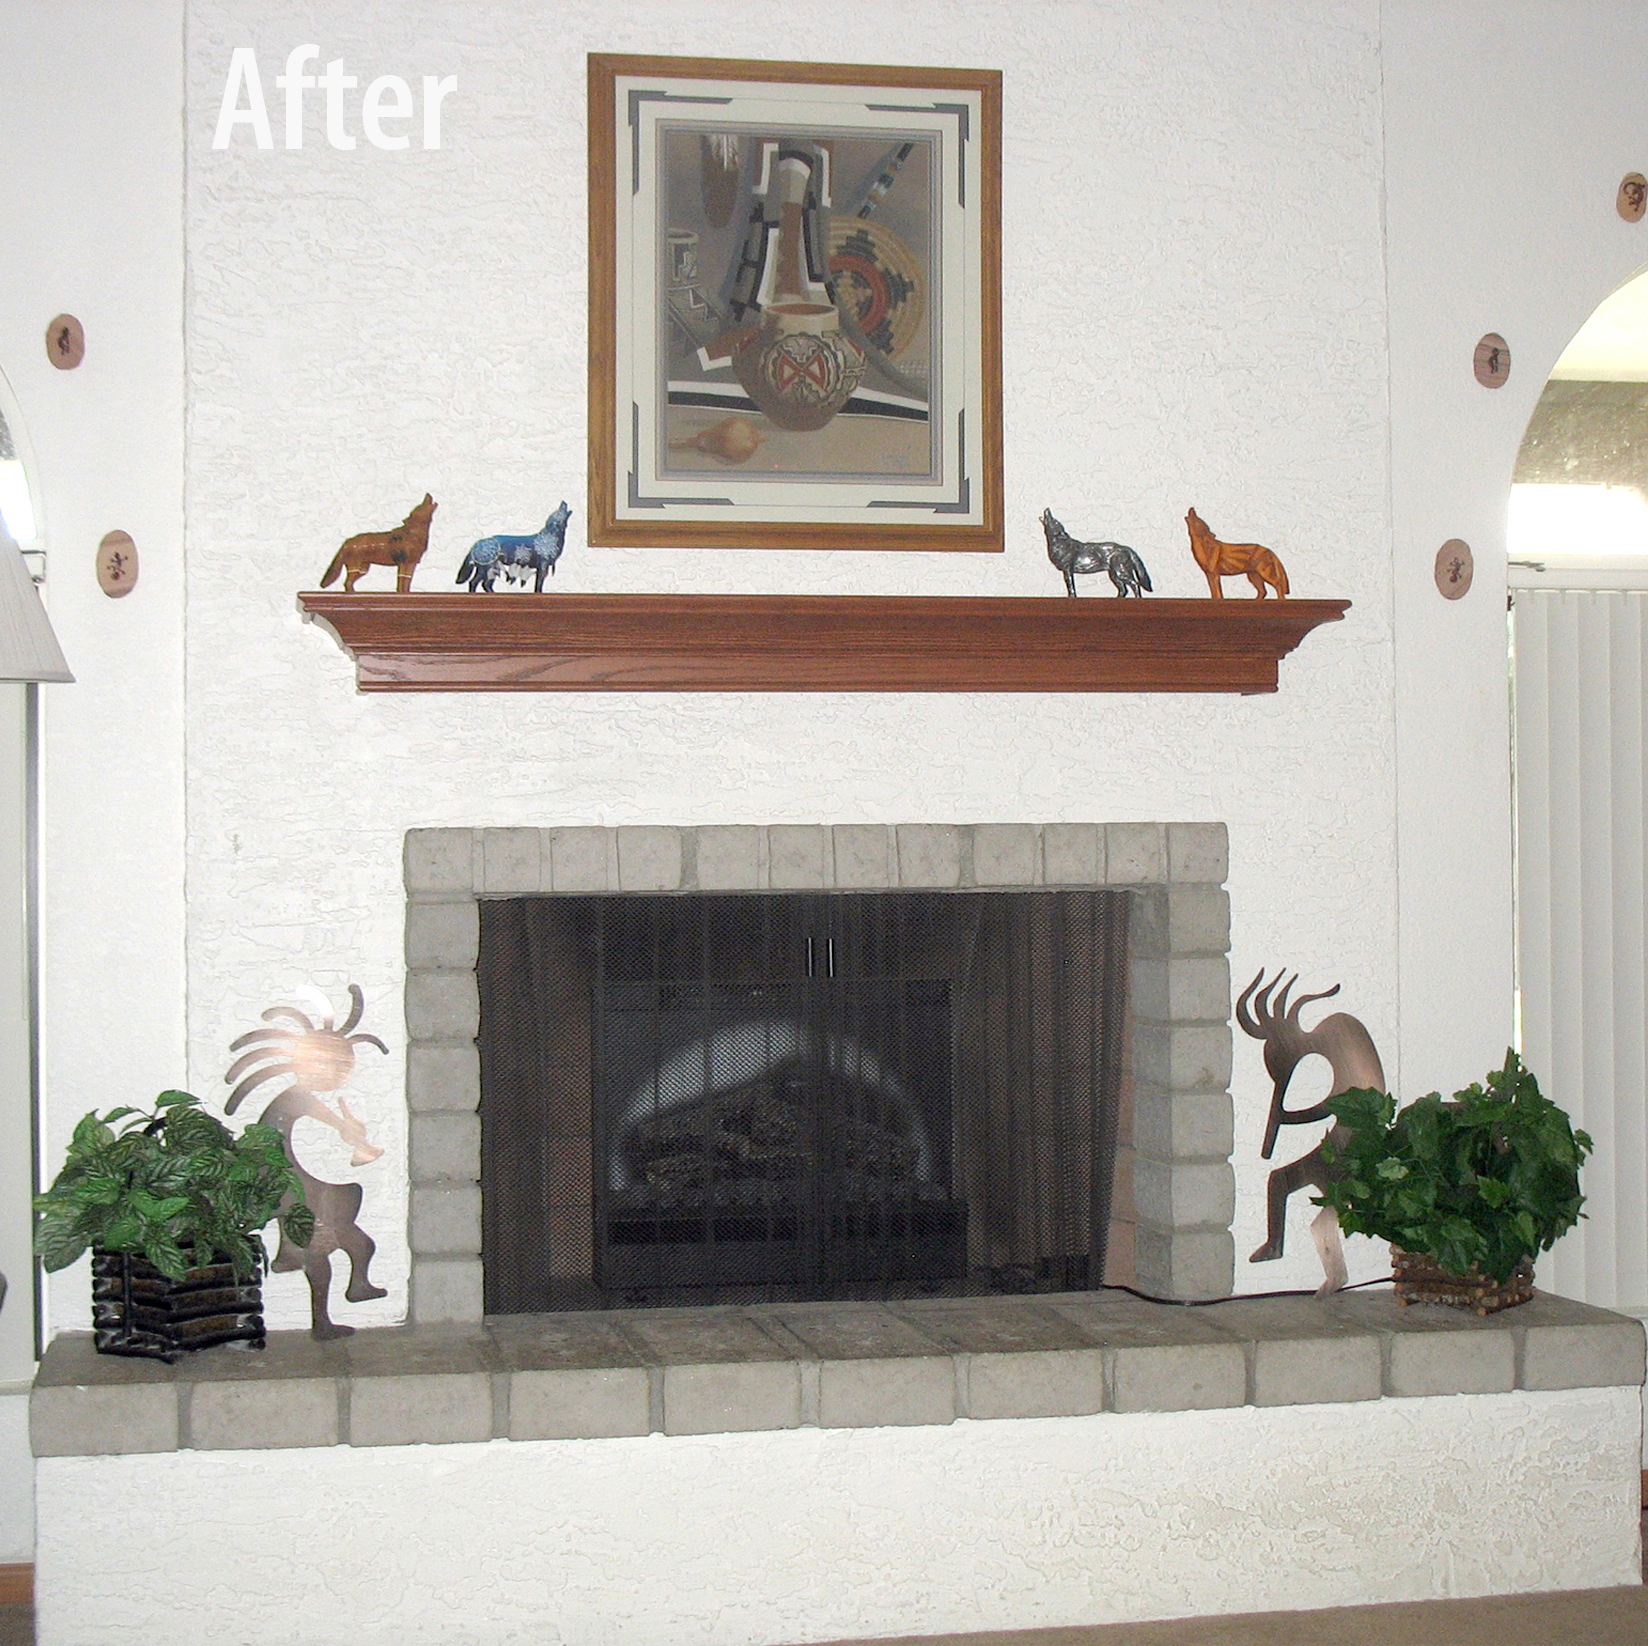 web-after-mantel-shelf-judith-warth.jpg